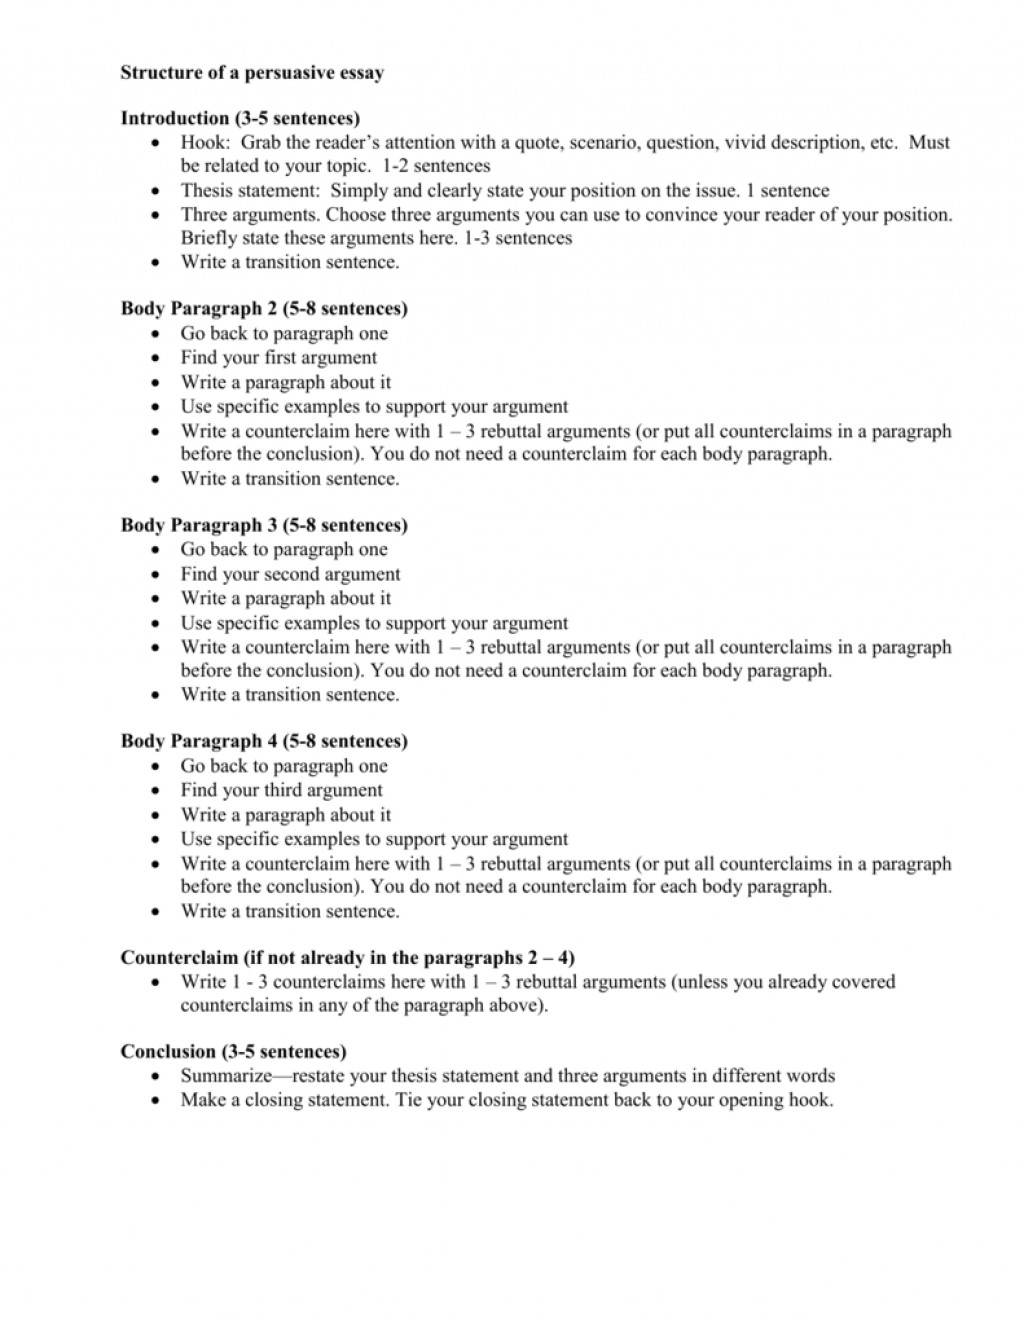 020 Structure Of Five Paragraph Persuasive Essay Closing Sentences For Essays 007464539 1 Conclusion Archaicawful Sentence Examples Large